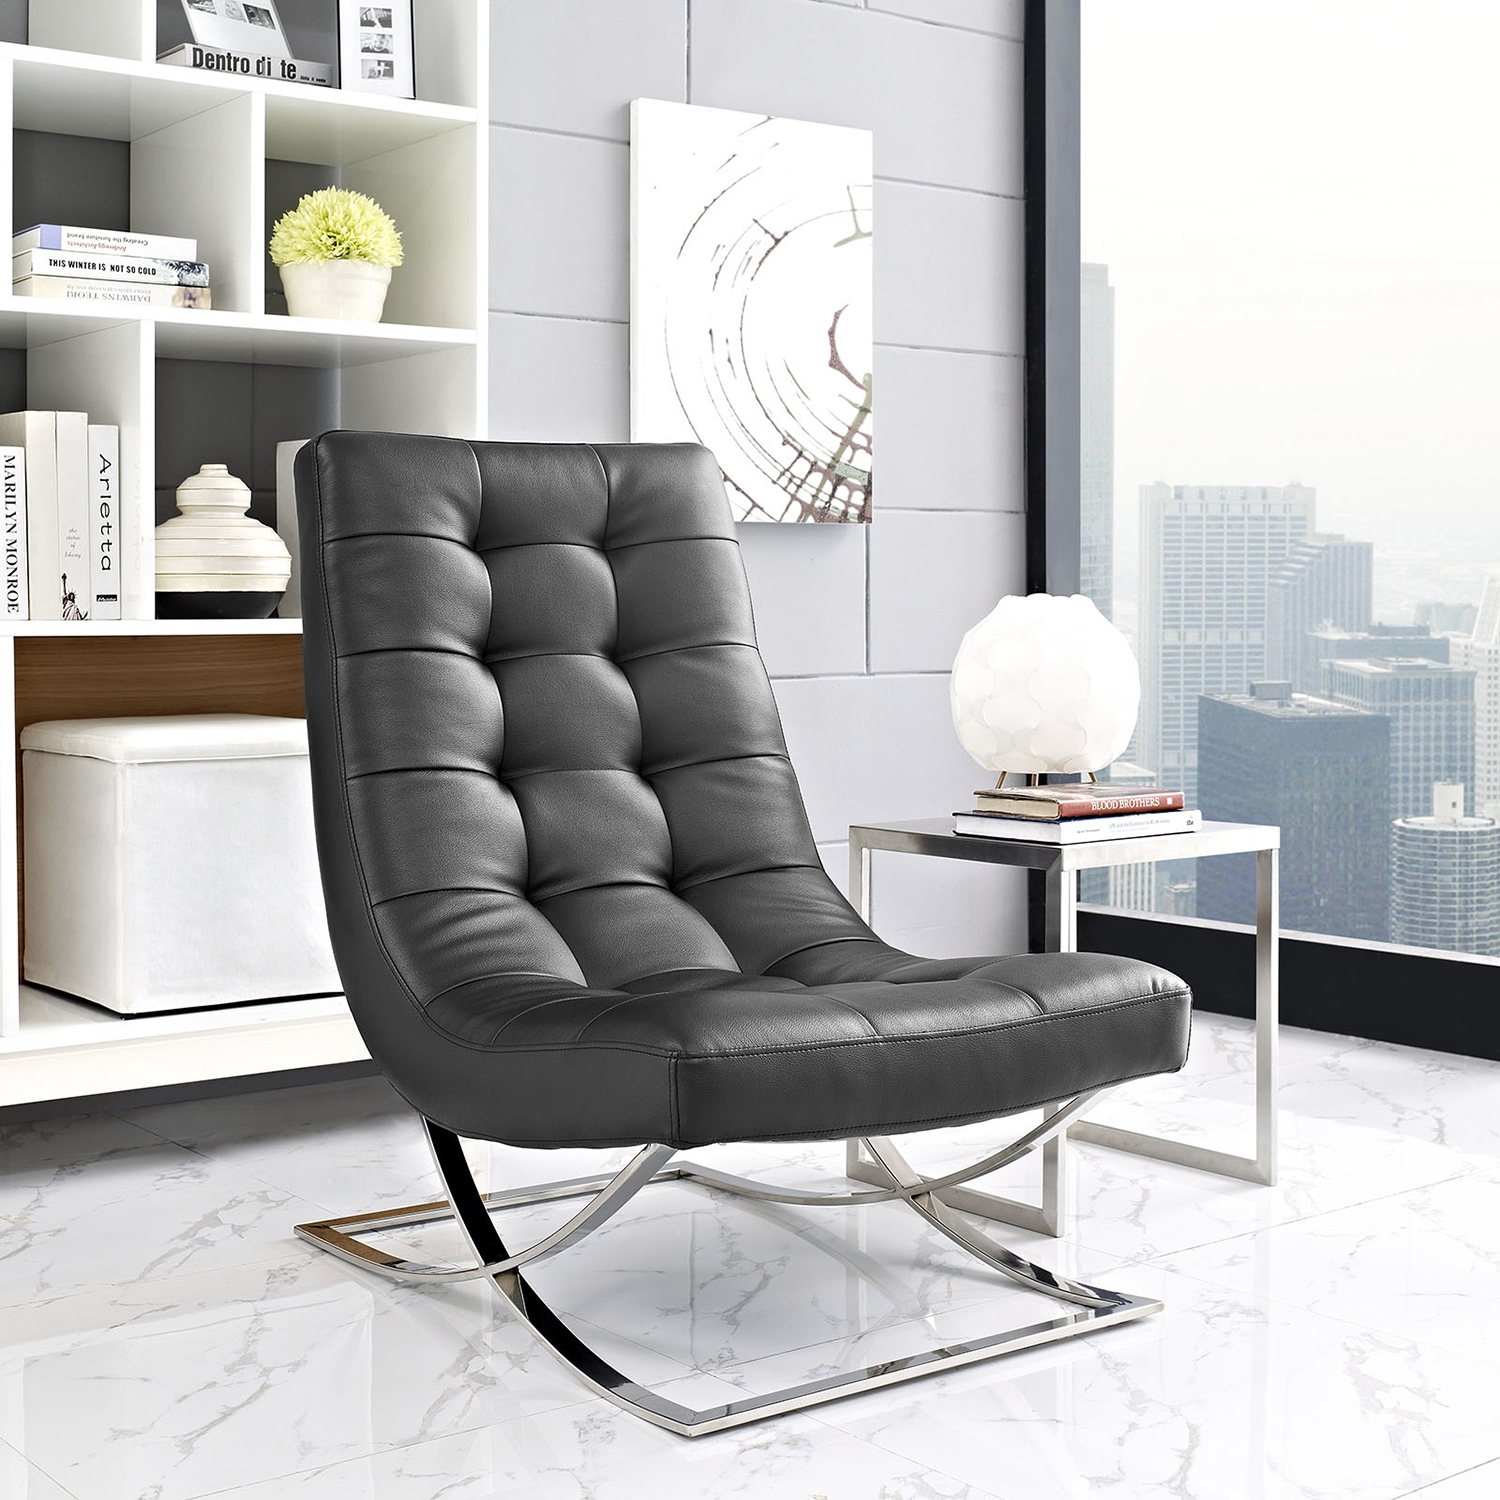 Slope Leatherette Lounge Chair - Tufted, Black - EEI-2076-BLK